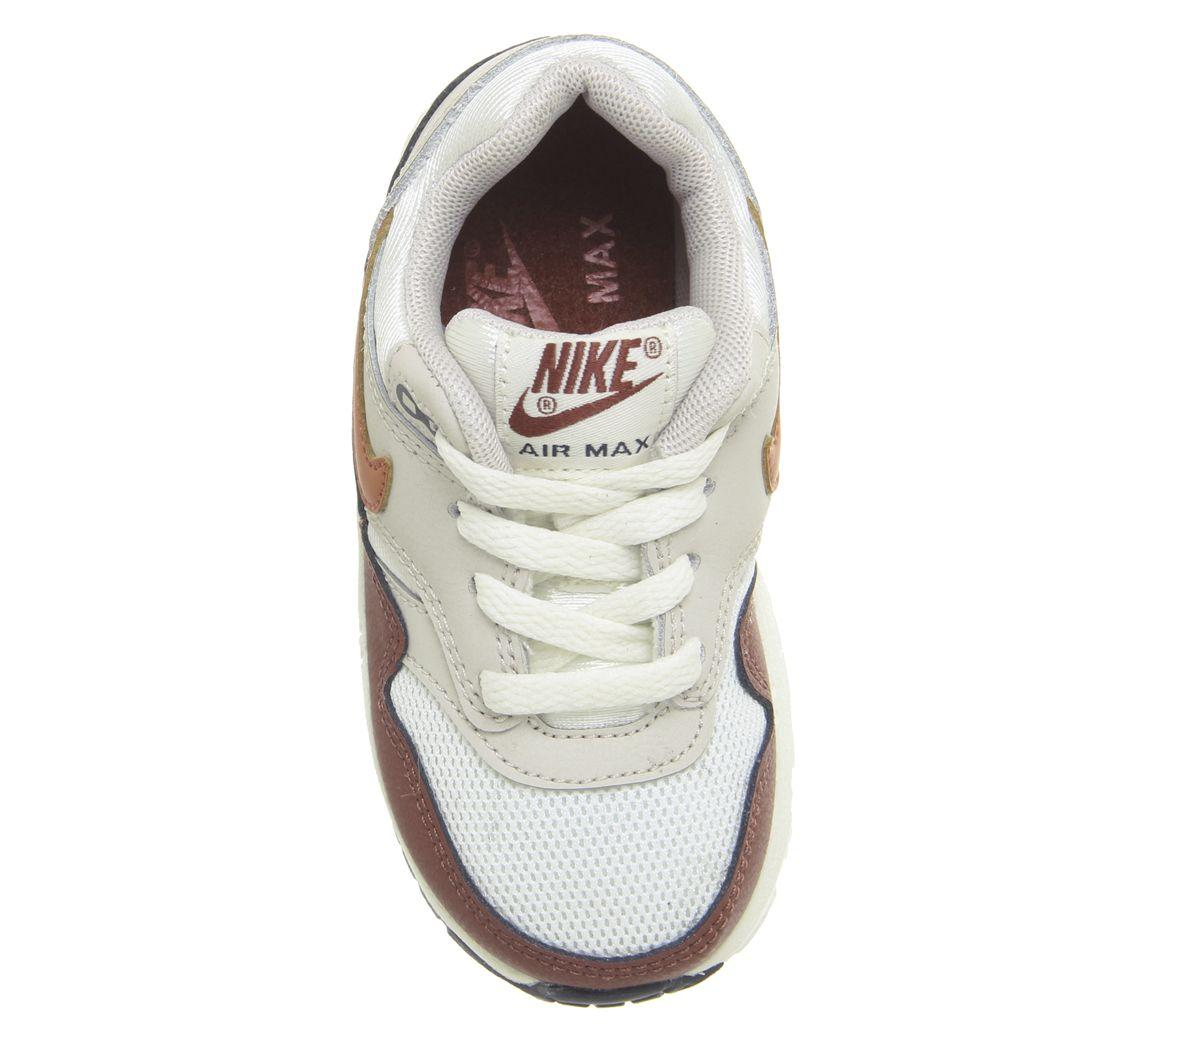 Nike Leather Air Max 1 Td for Men